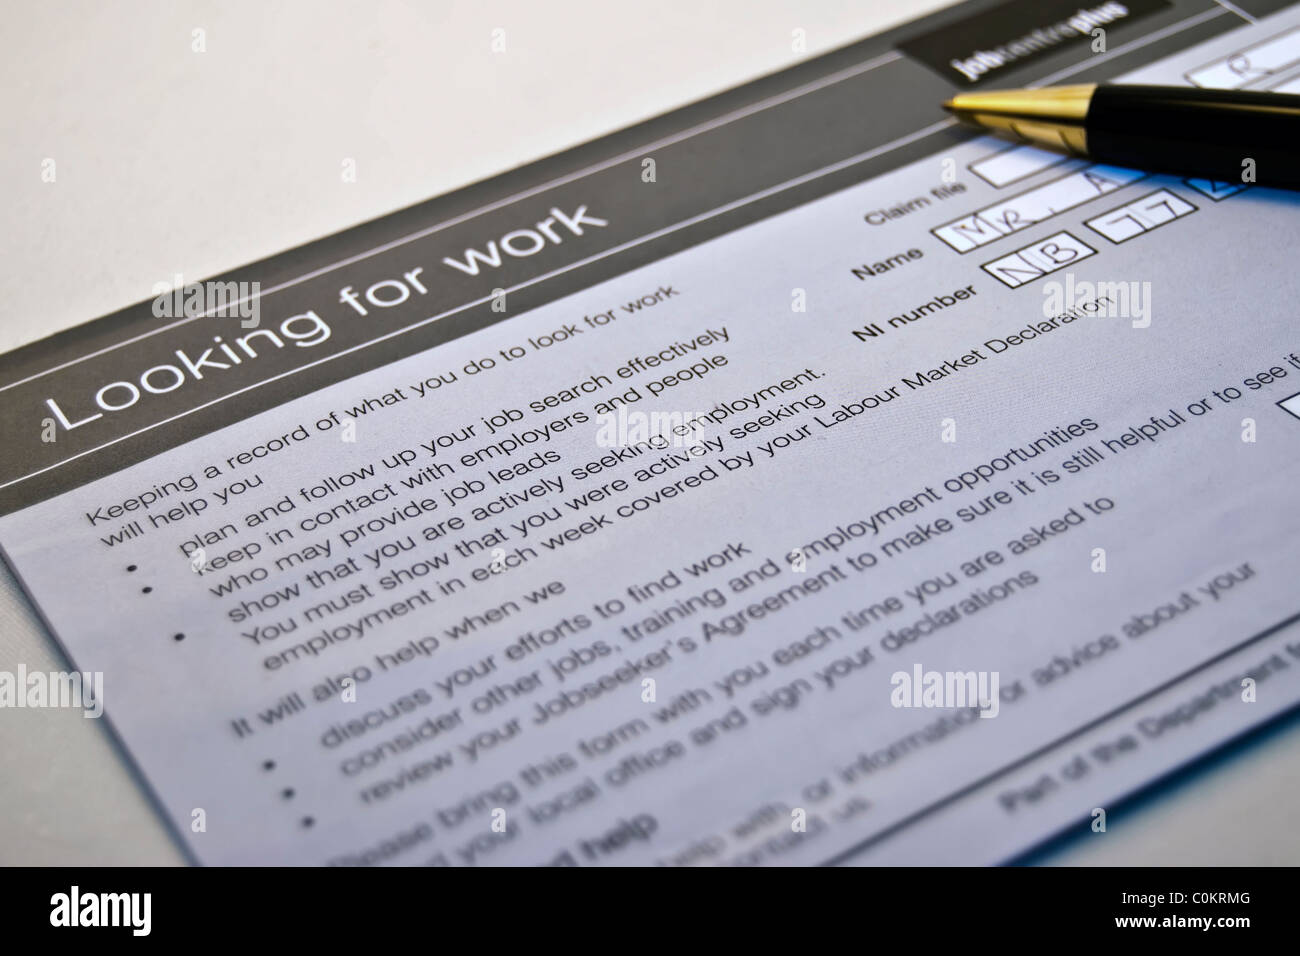 An unemployment form for jobseekers who are looking for work - Stock Image